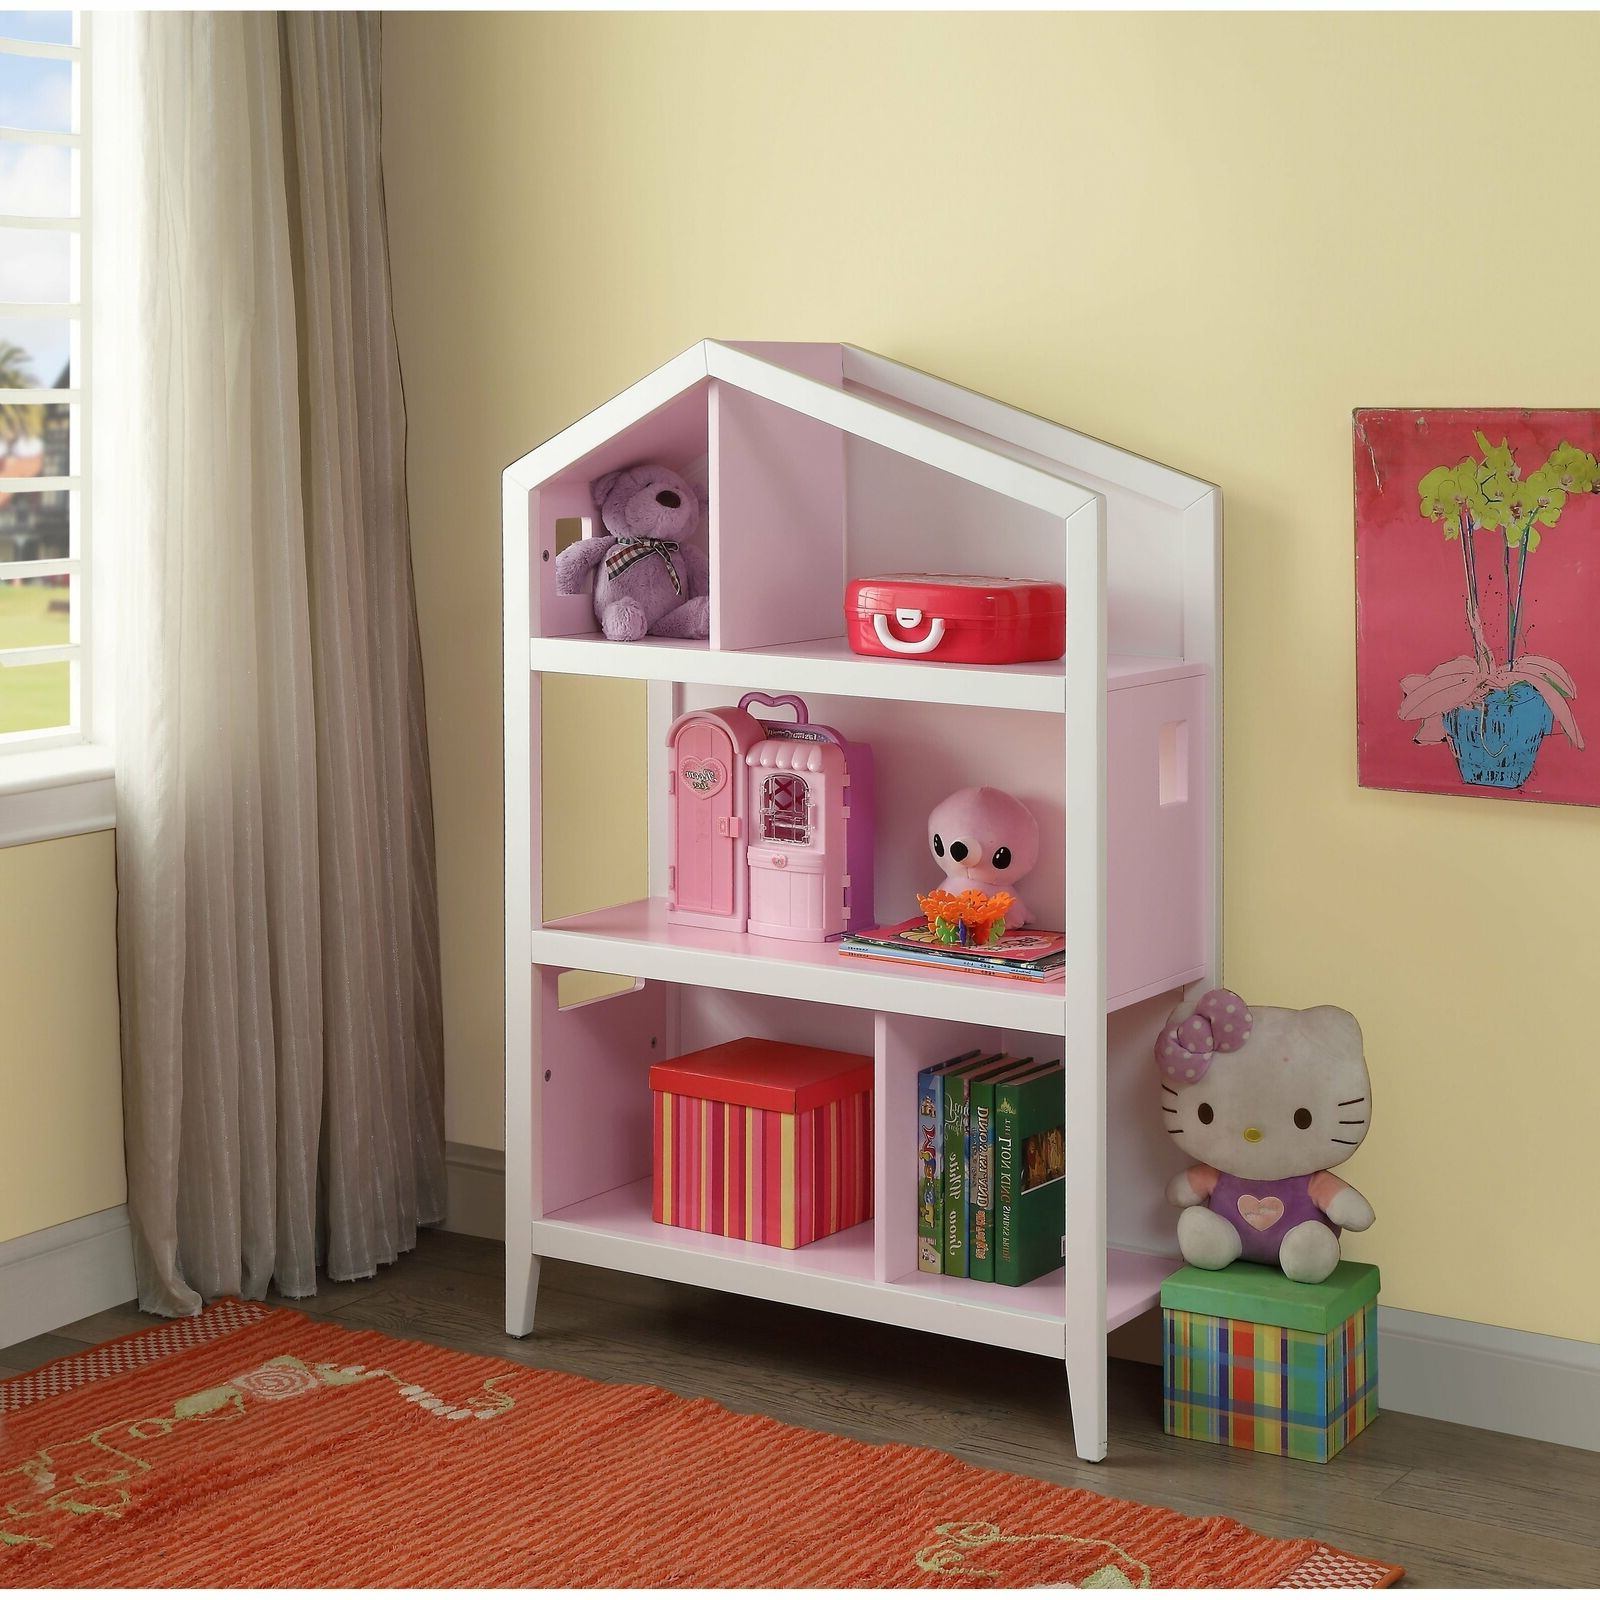 Acme Doll Cottage Bookcase With White And Pink Finish 92560 Throughout Latest Mdb Standard Bookcases (View 3 of 20)